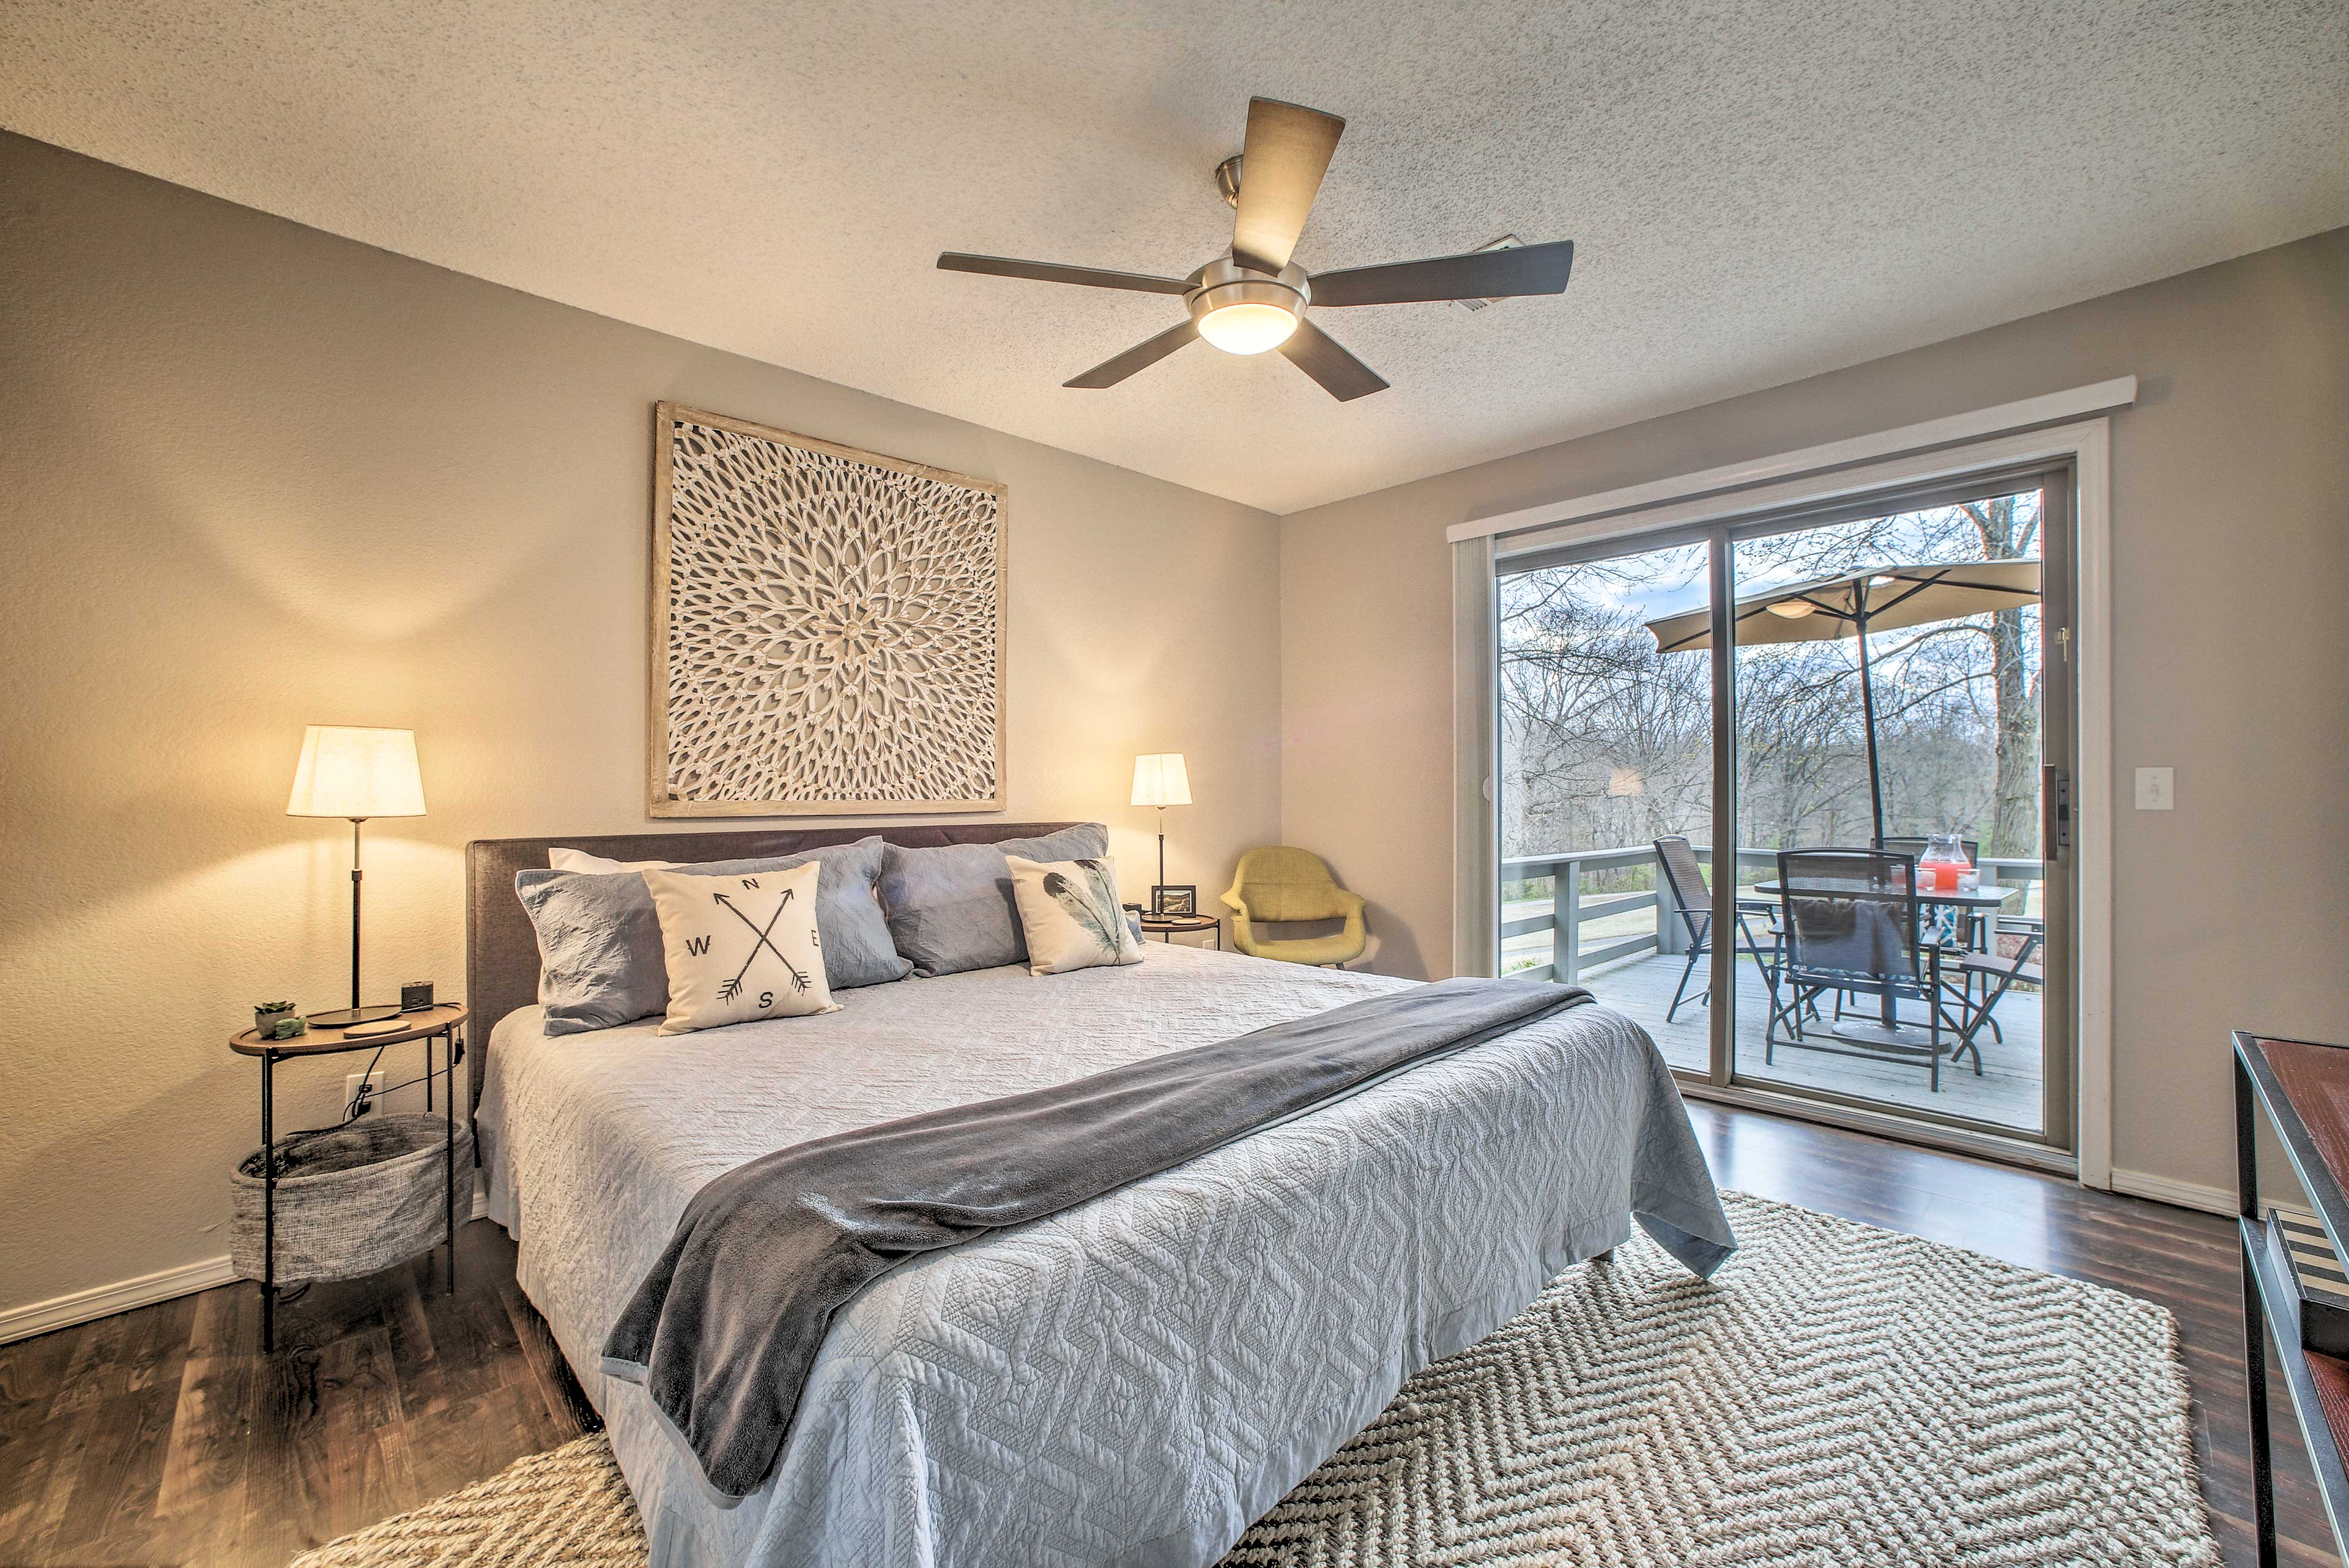 The master bedroom enjoys private access to the balcony.